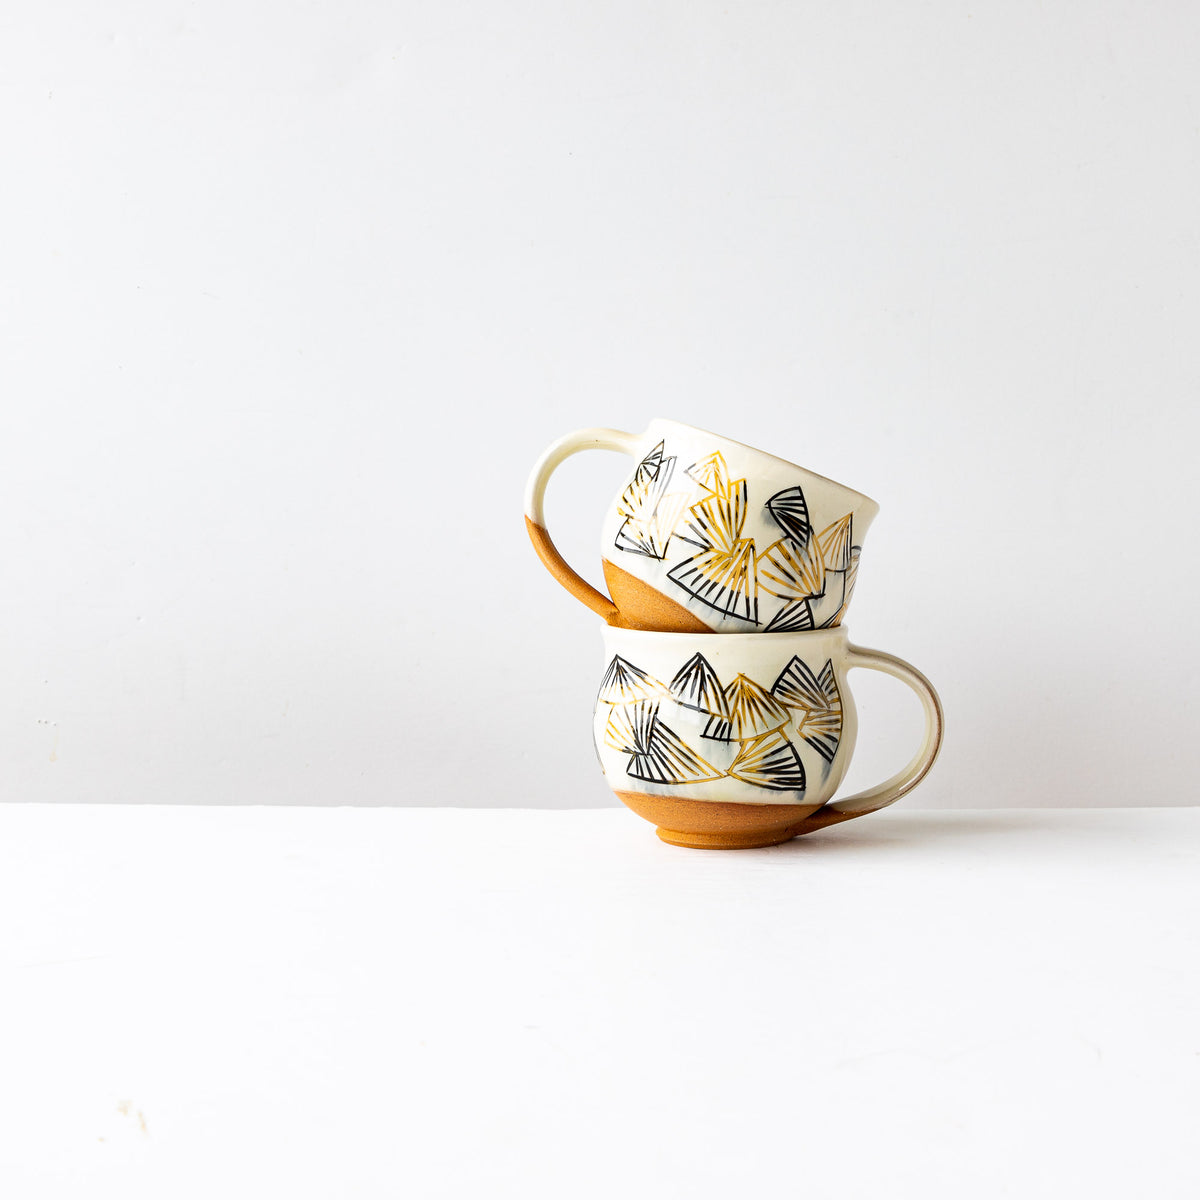 Black & Gold Pattern - Handmade Mishima Round Mugs With Folding Fan Pattern - Sold by Chic & Basta